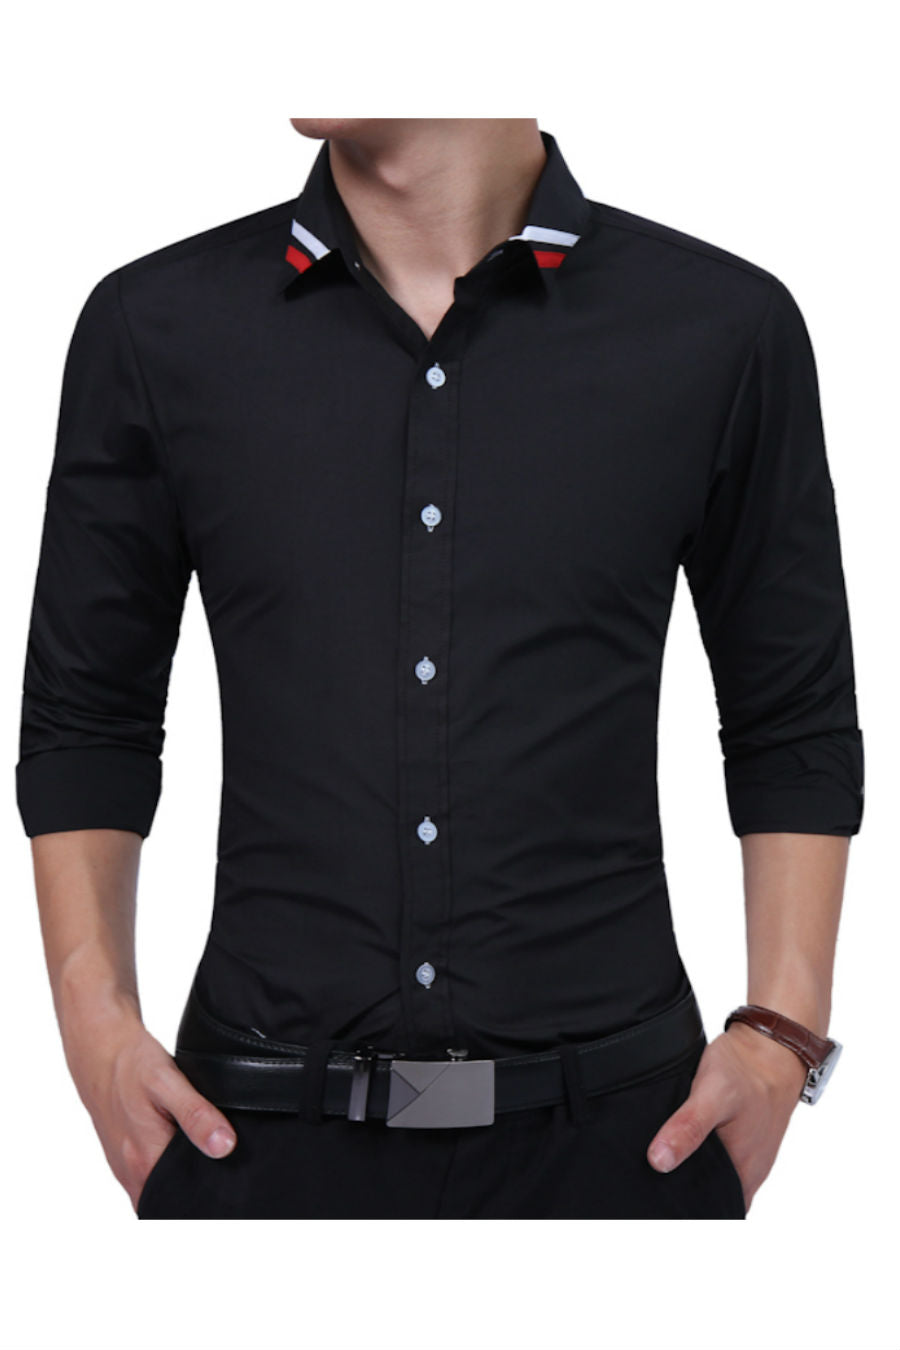 Elegant Slim Fit Black Shirt